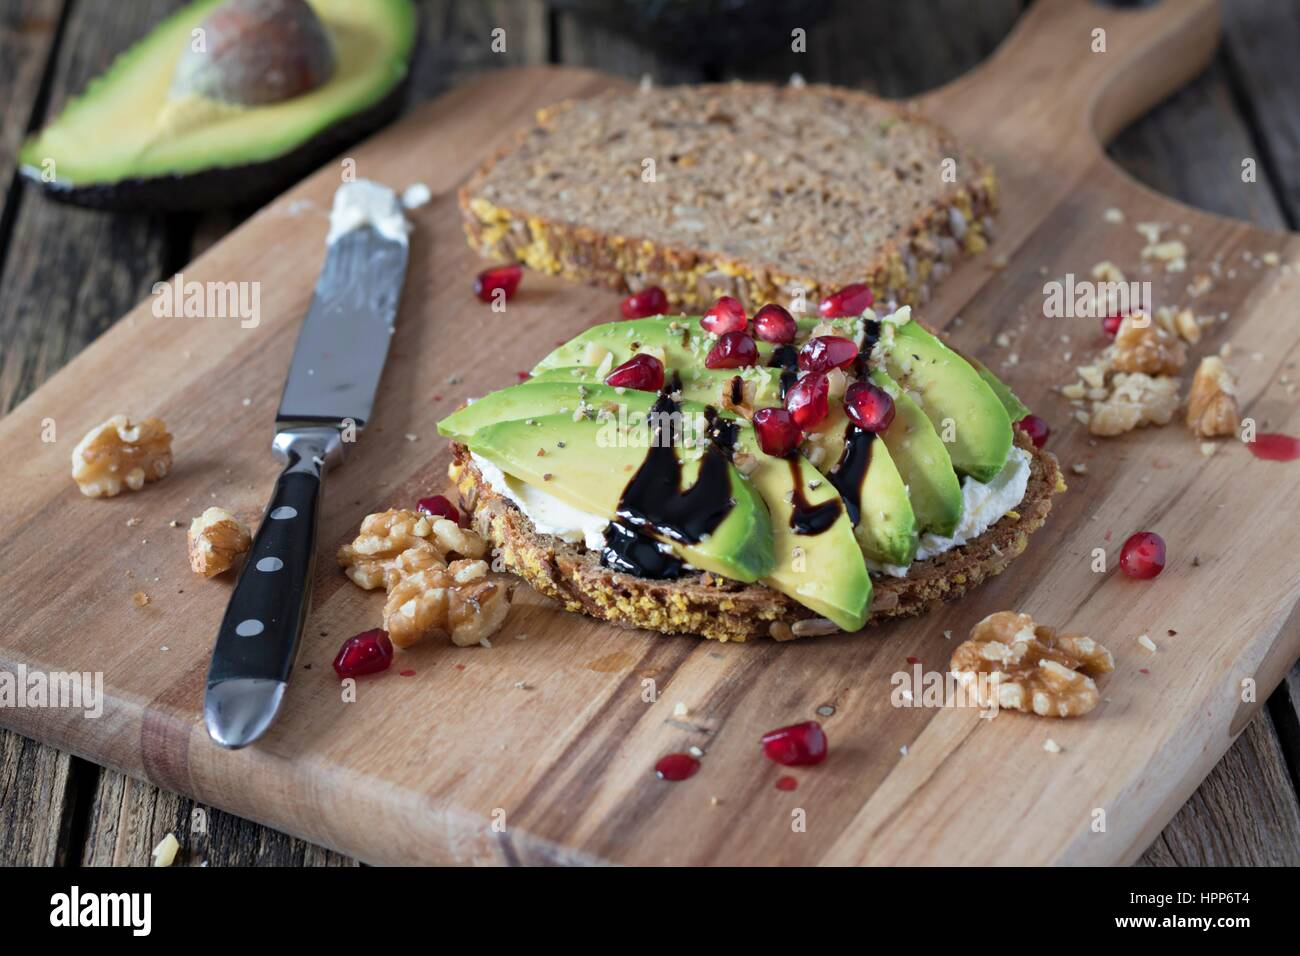 Protein bread slice with cream cheese, sliced avocado, walnuts and  pomegranate seed on wooden board - Stock Image